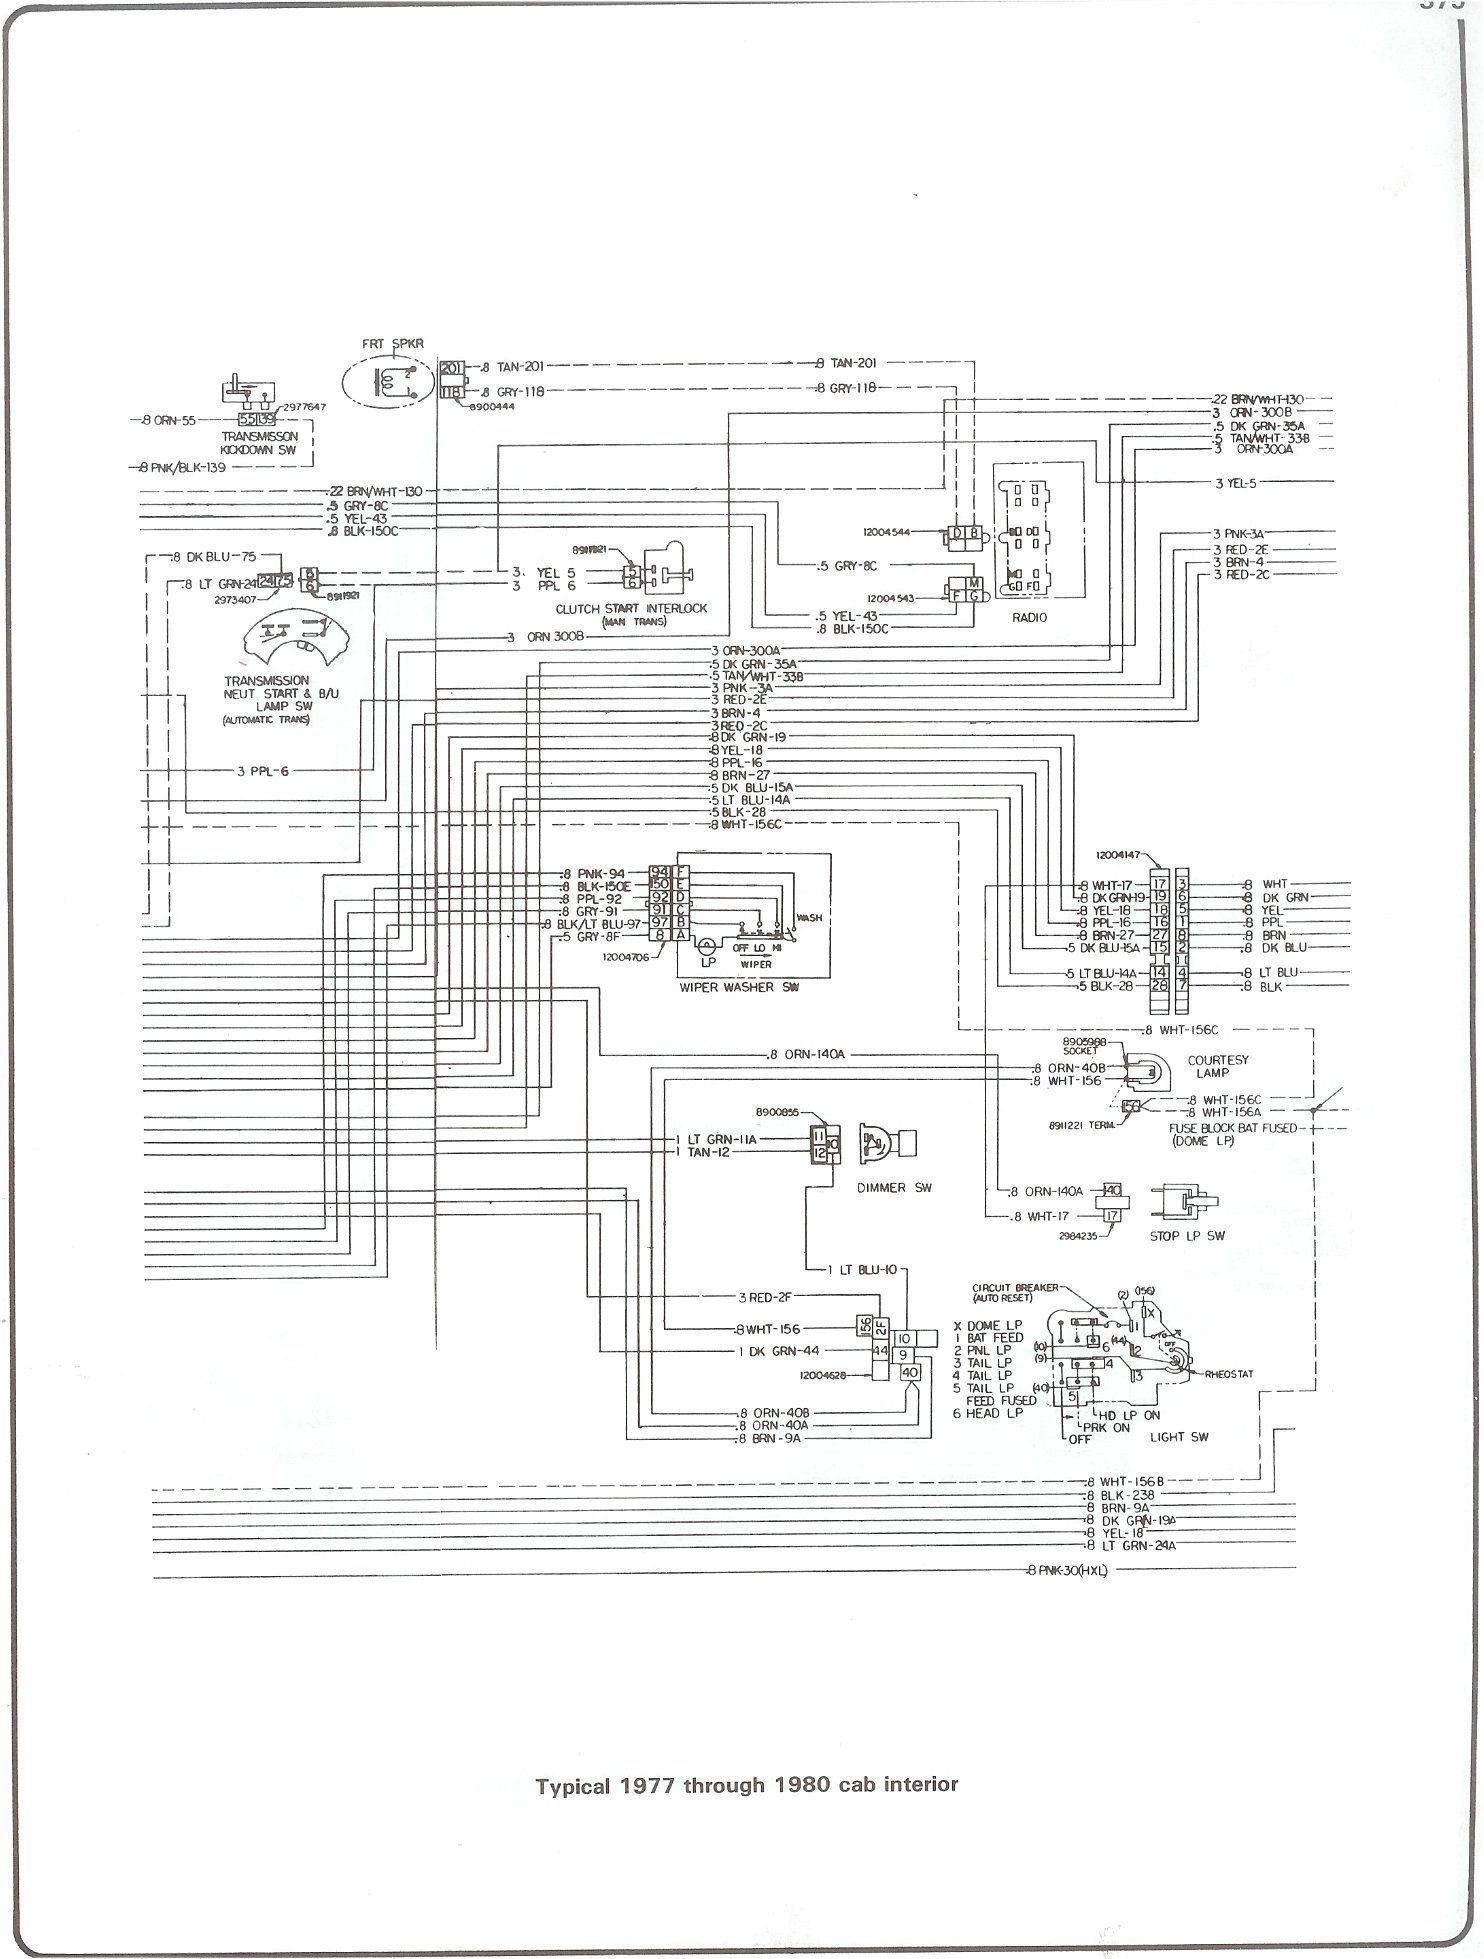 77 80_cab_inter complete 73 87 wiring diagrams 78 chevy wire digram at soozxer.org